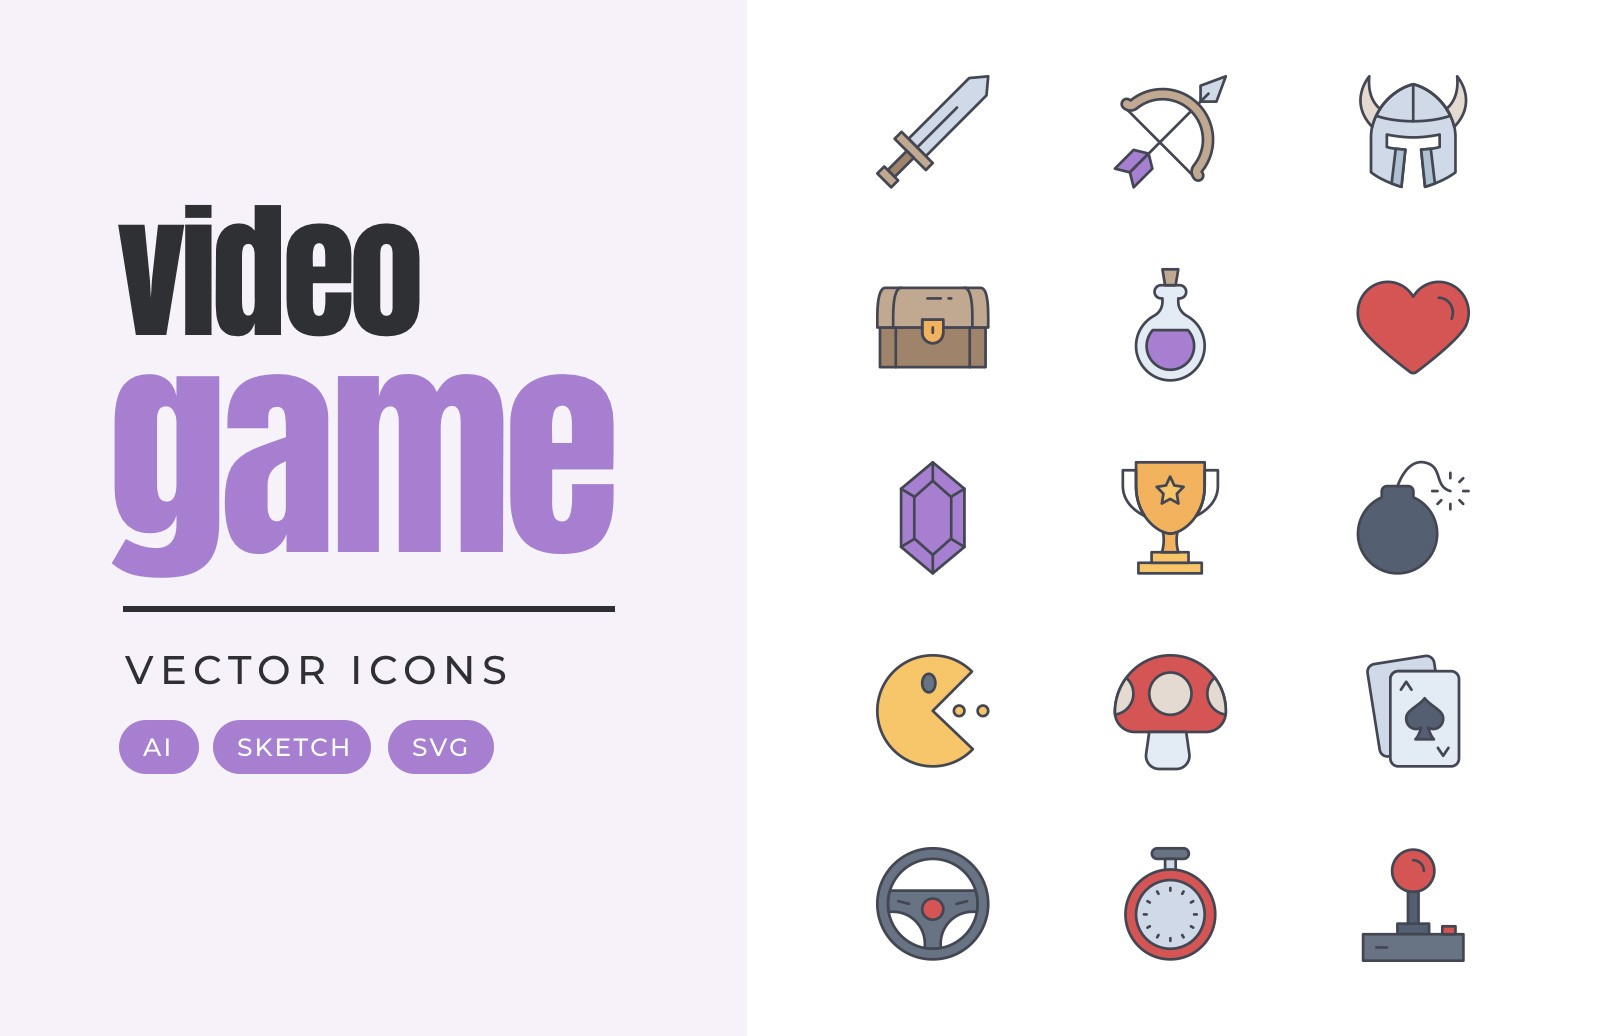 Video Game Vector Icons